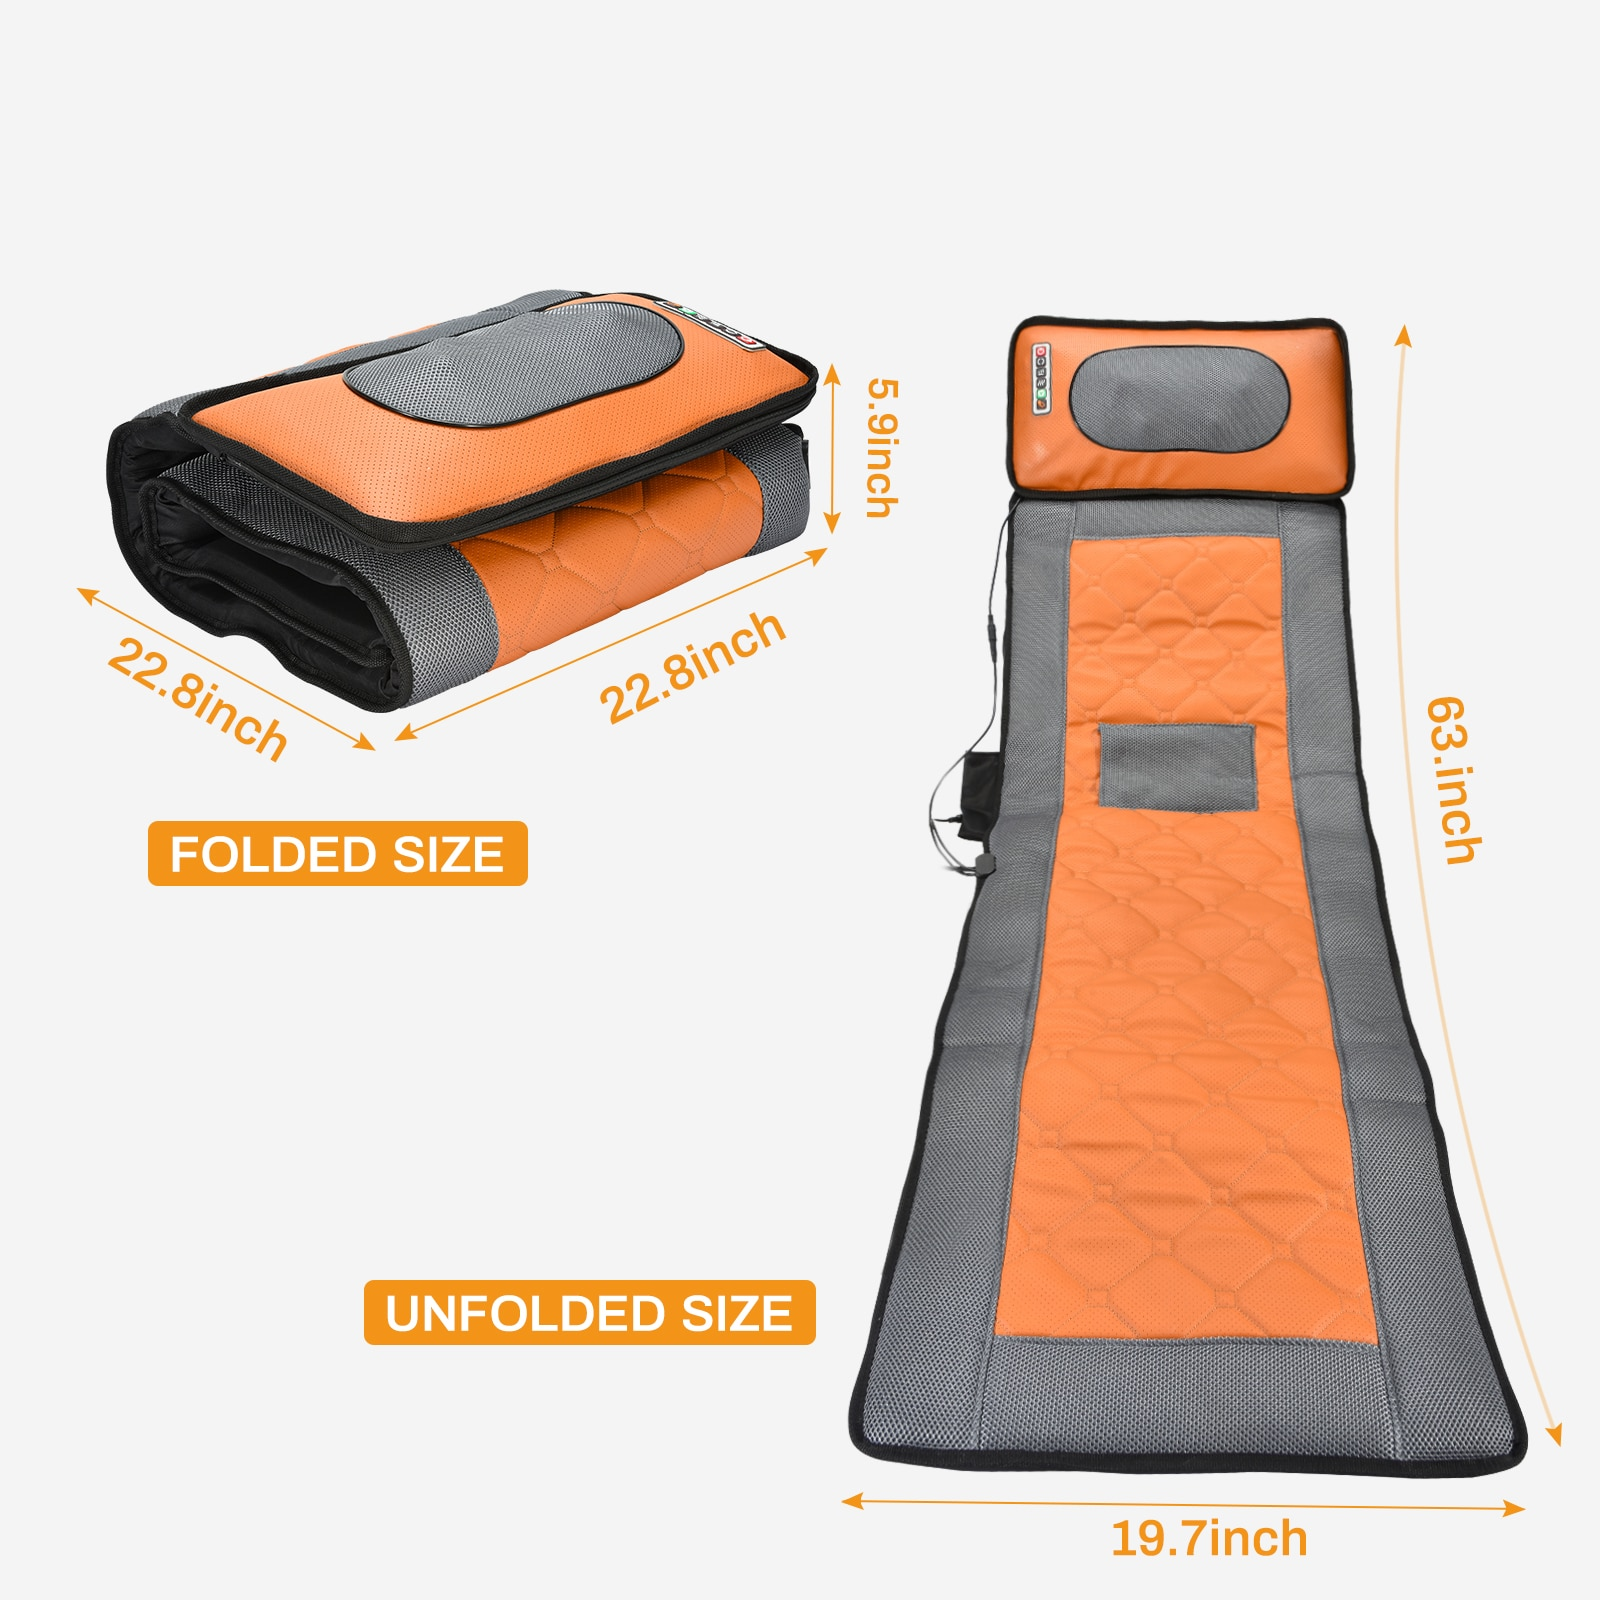 Collapsible Full-body Massage Mattress Automatic Heating Multifunction Far Infrared Vibration Massager Cushion + Remote Control enlarge